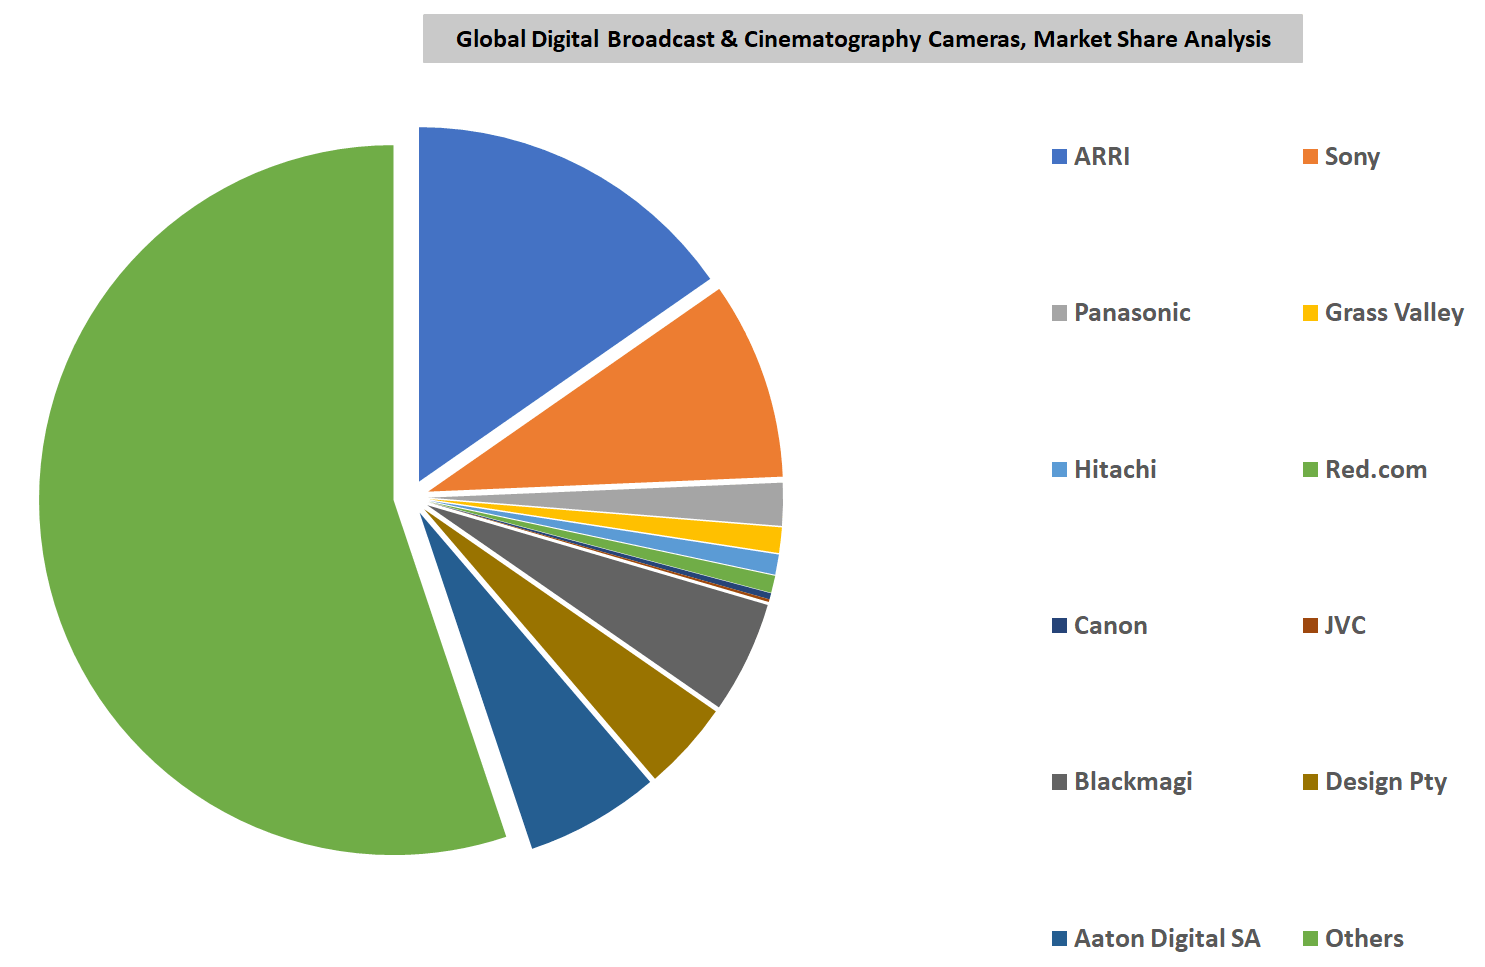 Global Digital Broadcast and Cinematography Cameras Market By Key Players